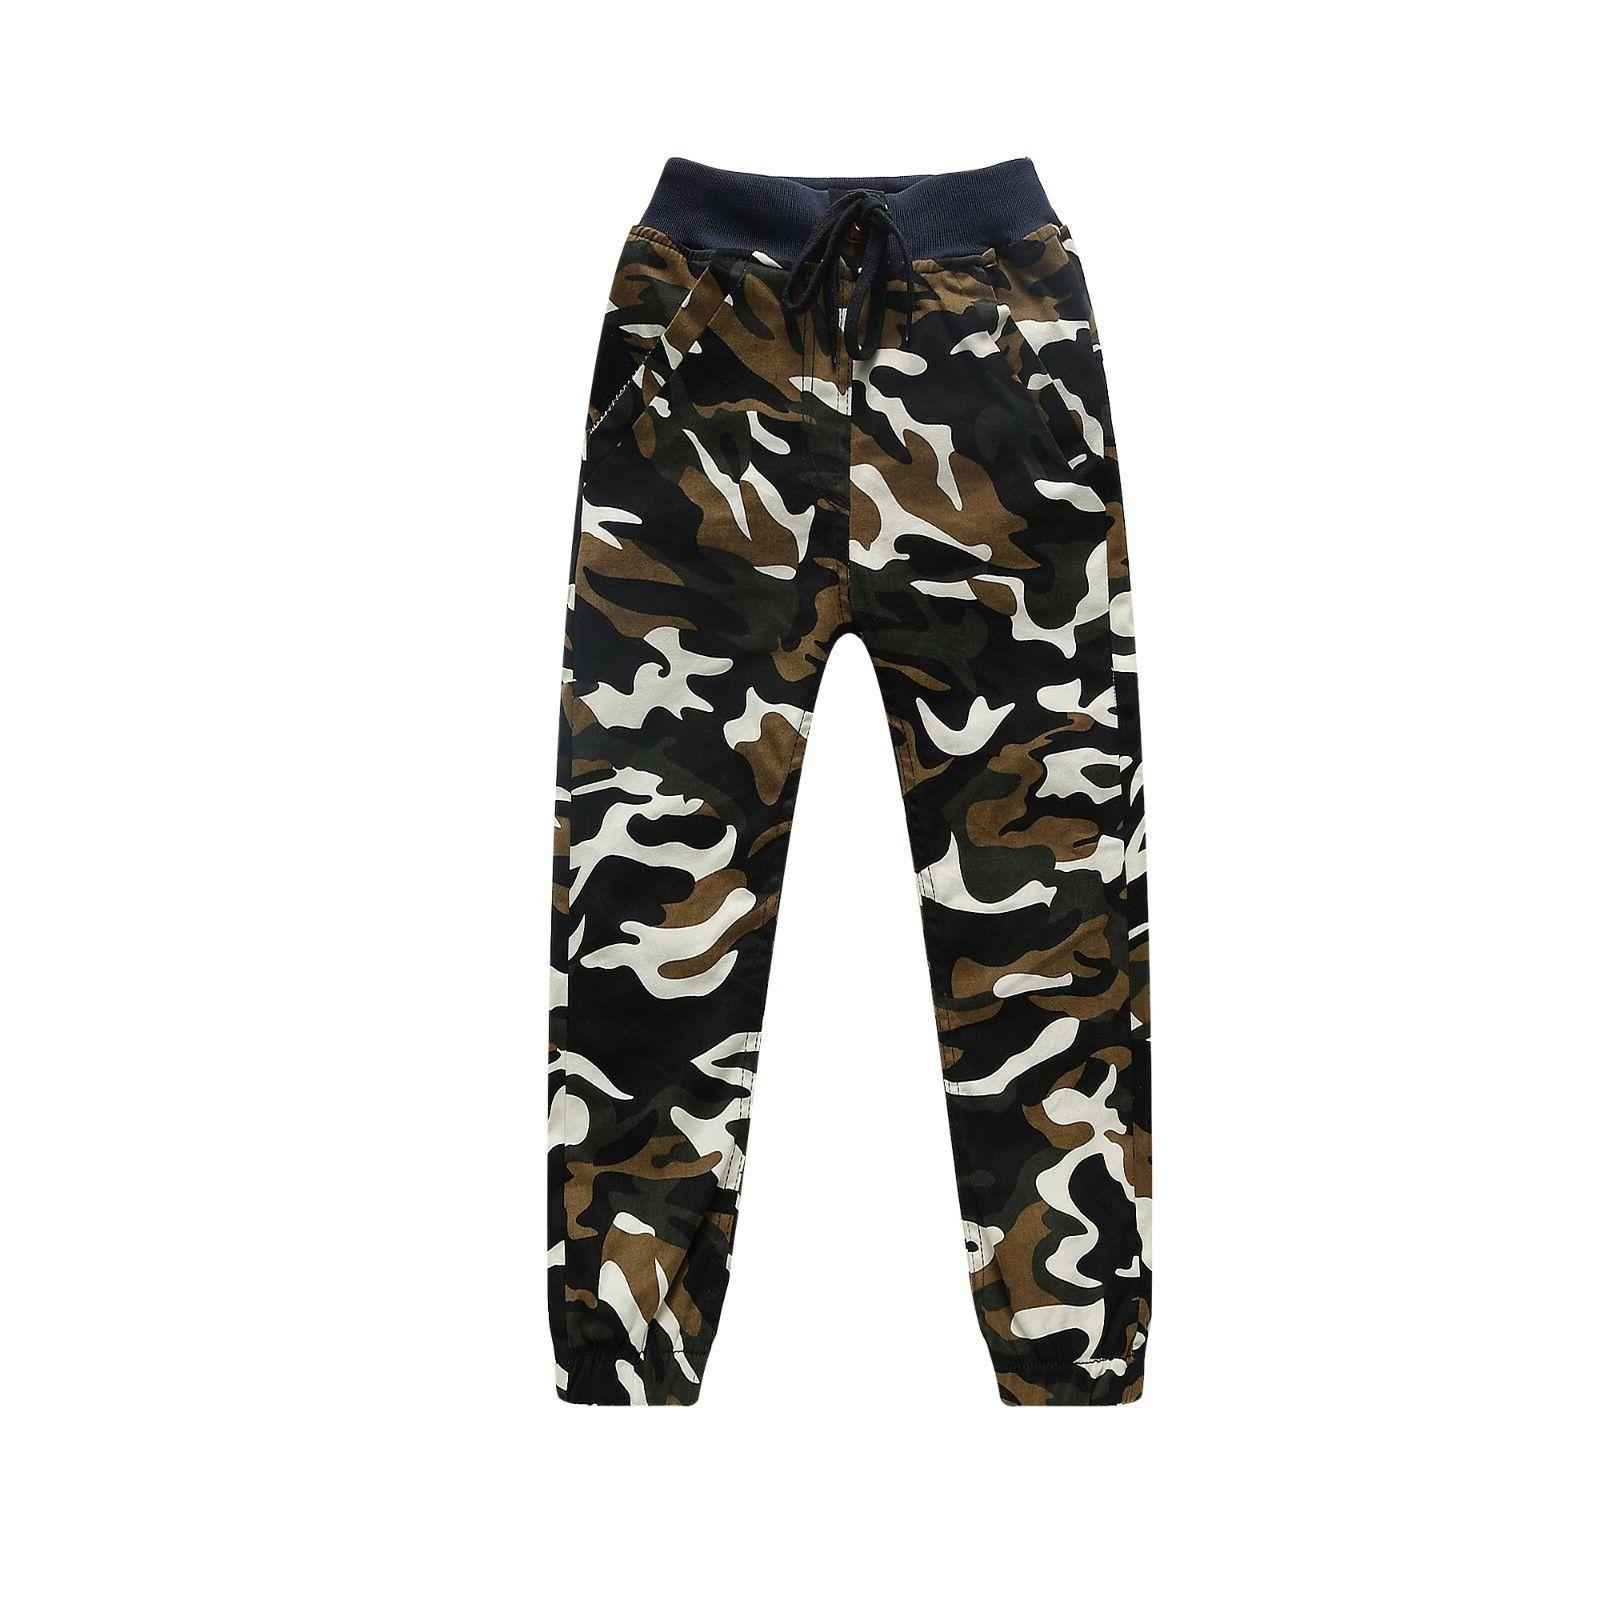 Kids Clothing Camouflage Bottoms